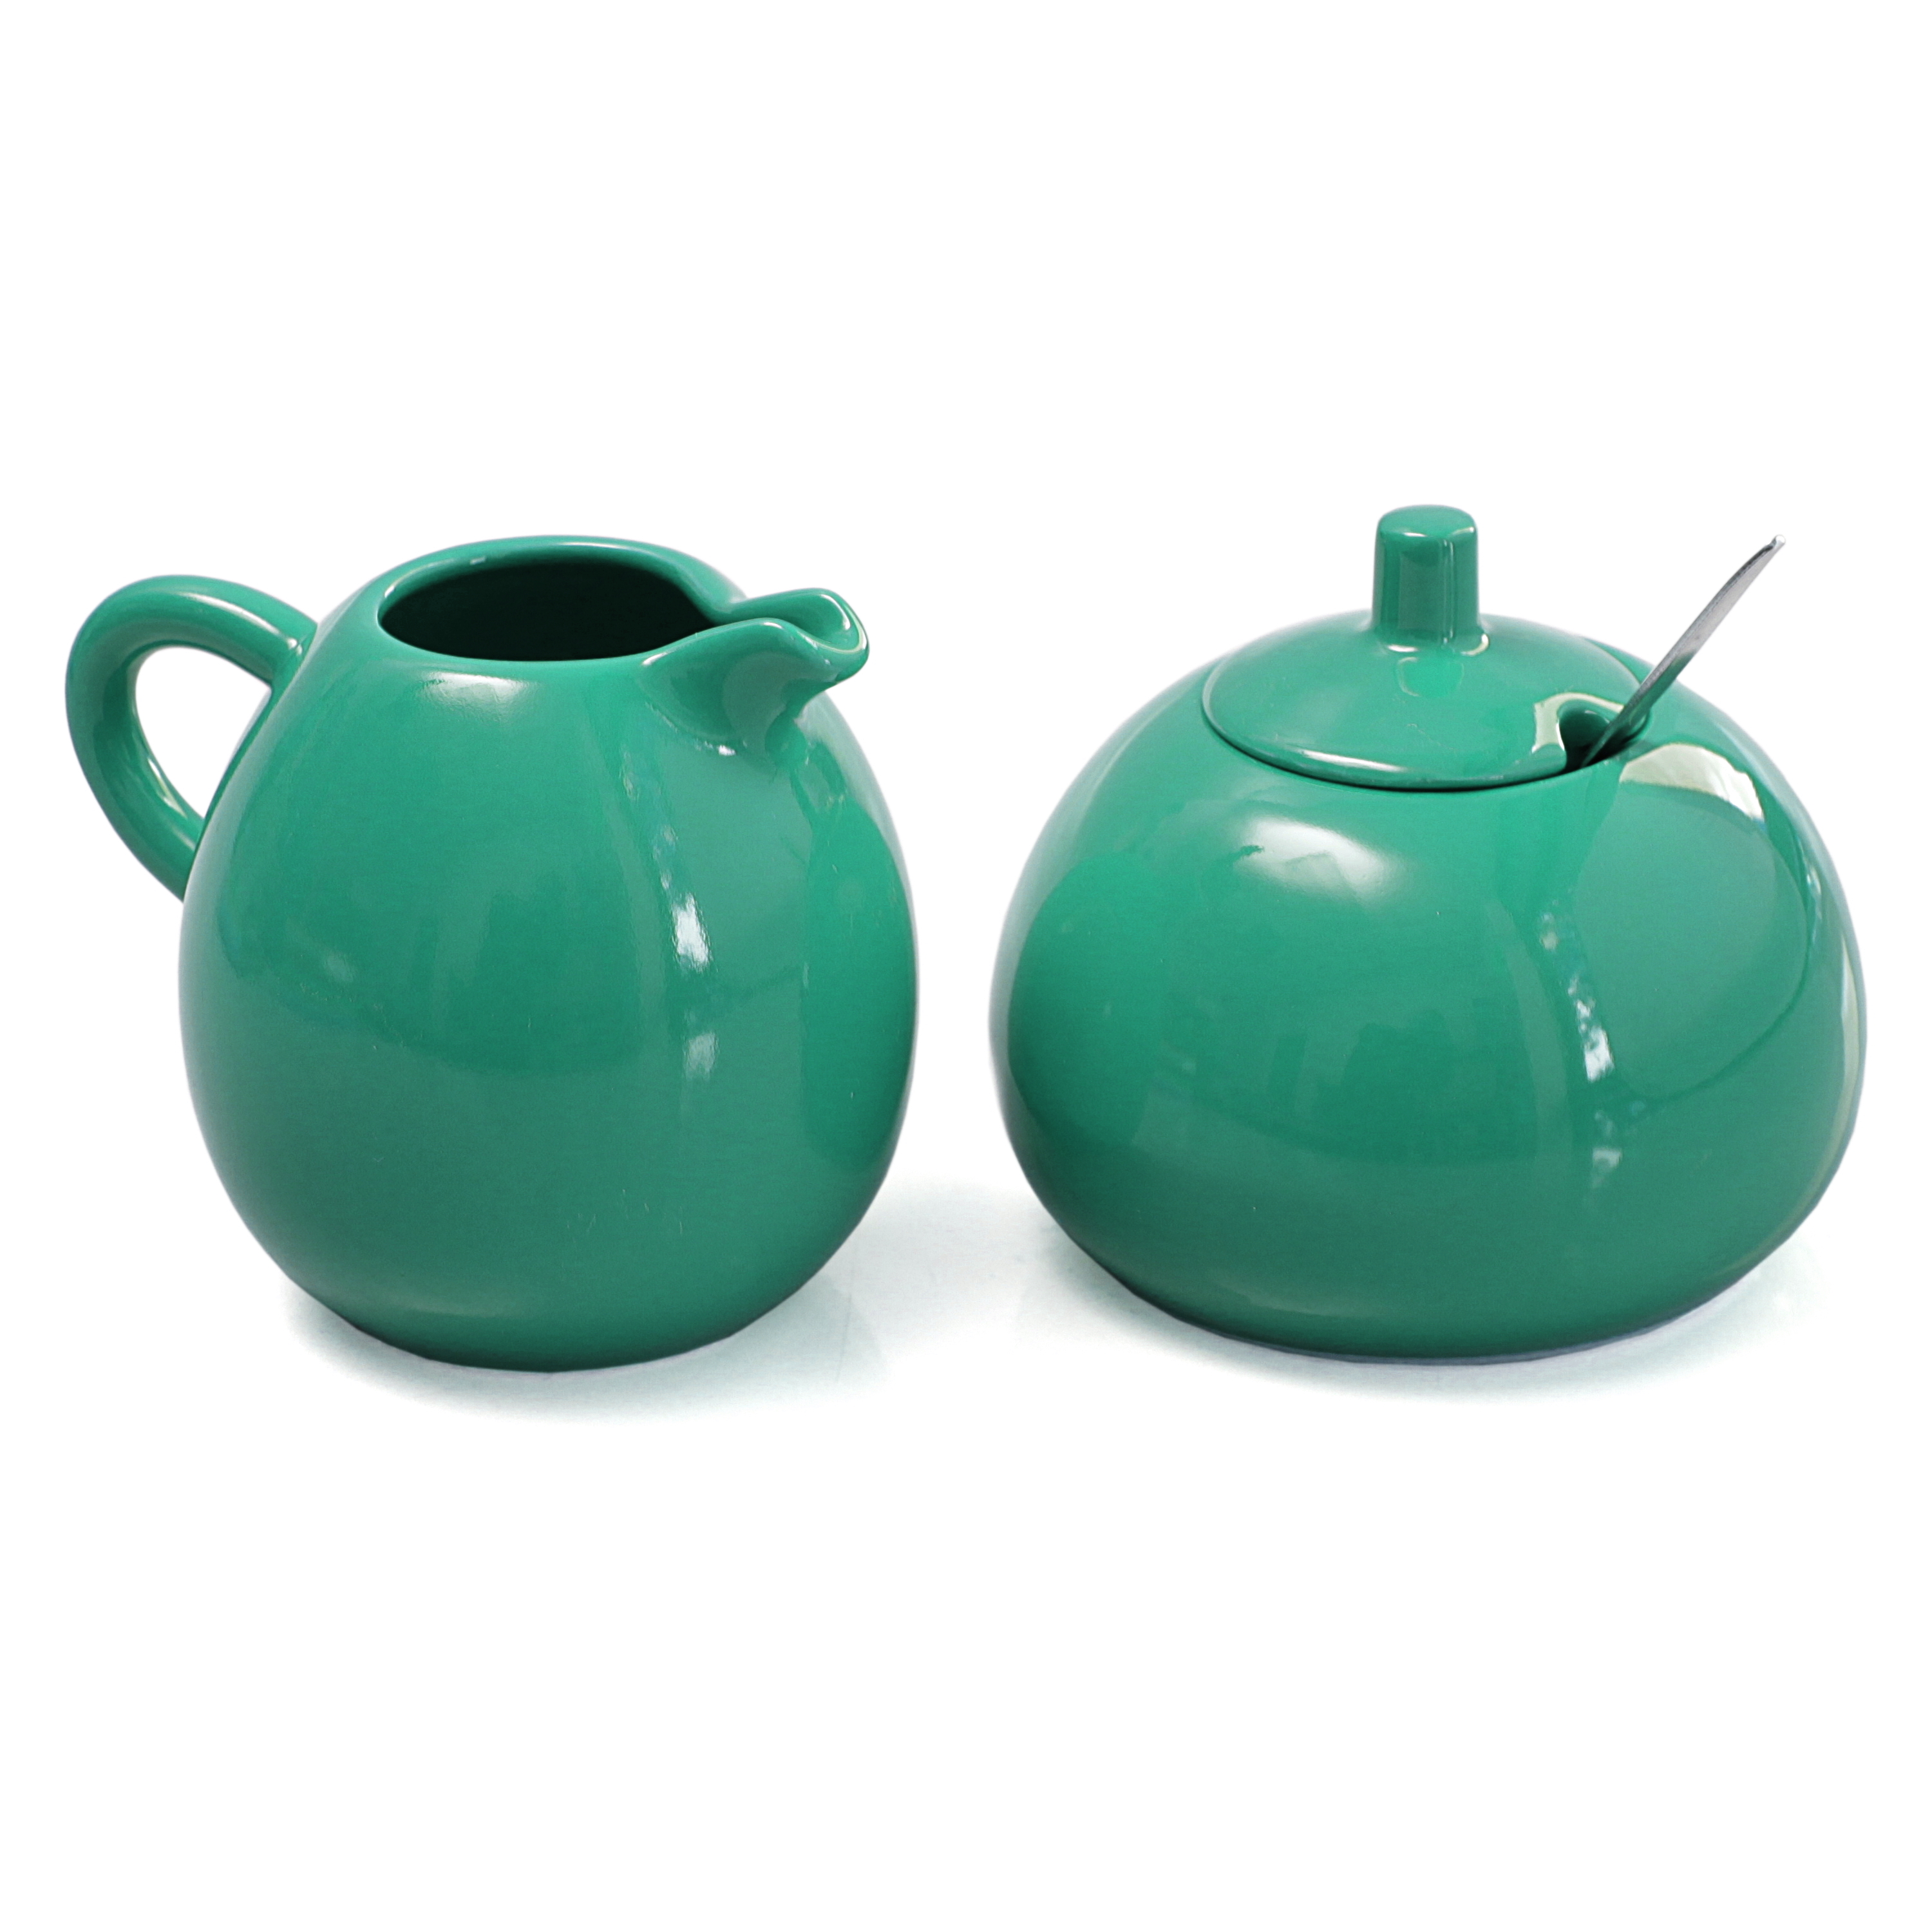 Omniware Teal Stoneware 5 Ounce Sugar And Creamer Set With Stainless Steel Spoon